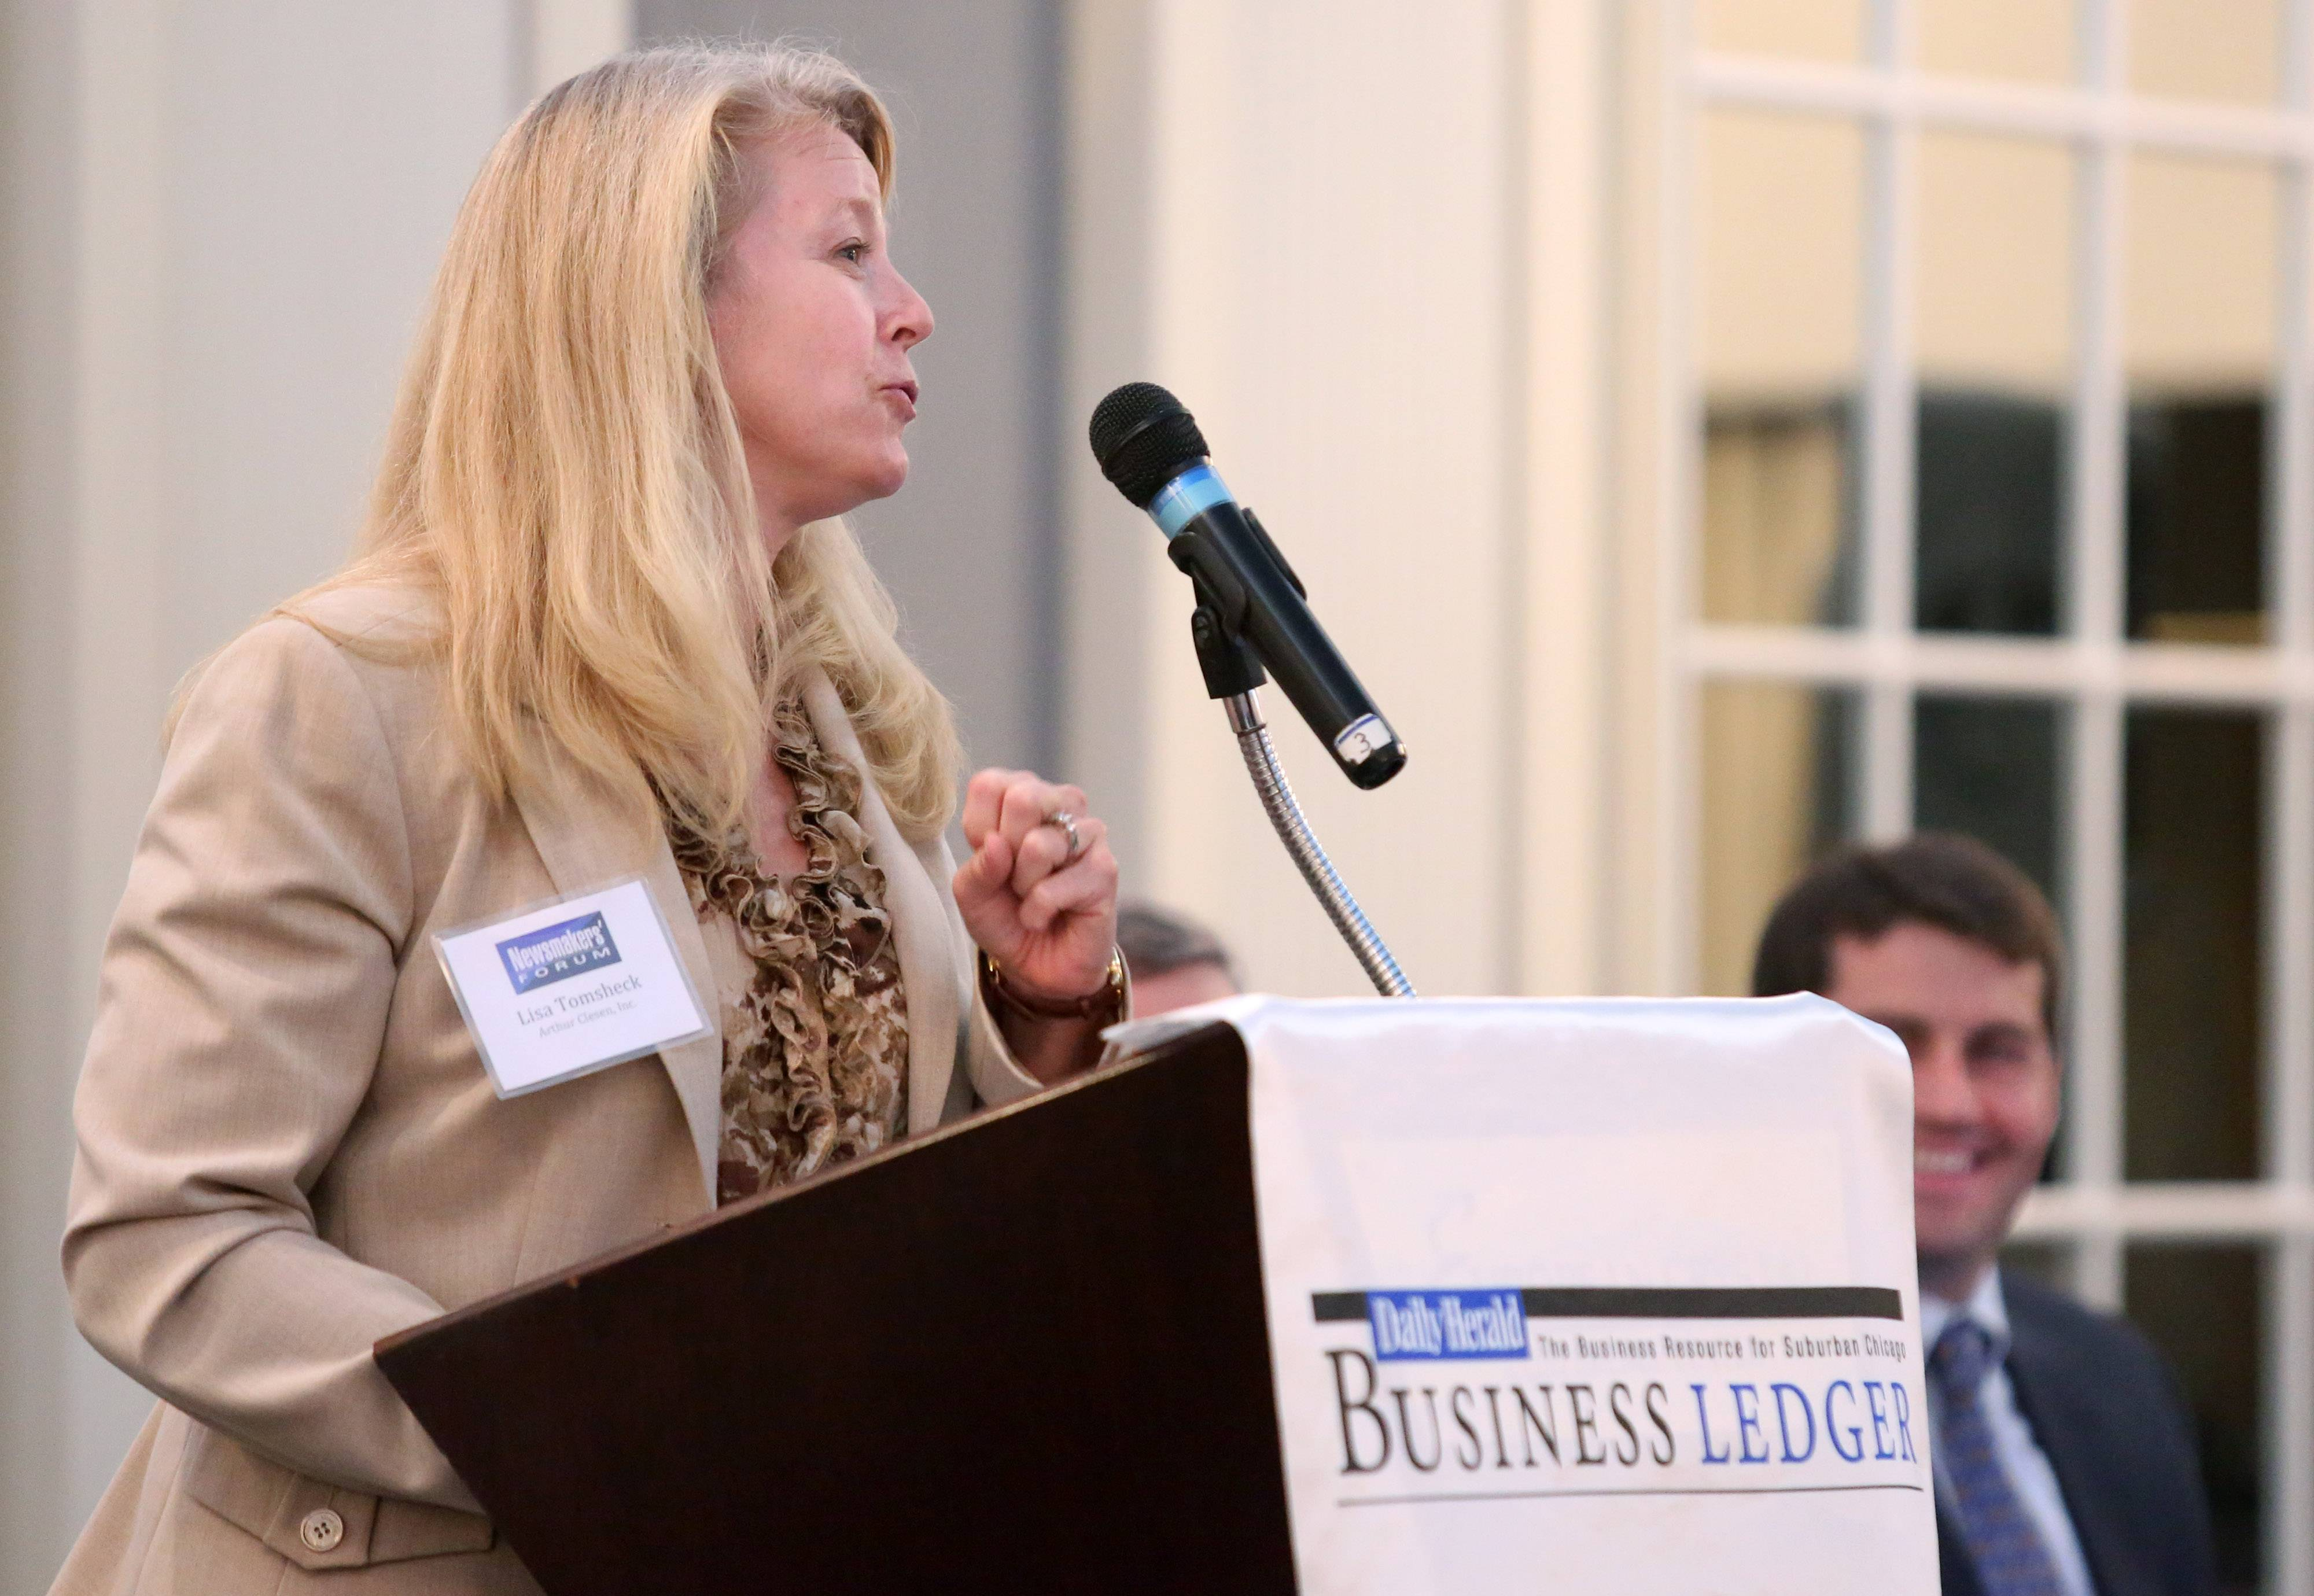 Lisa Tomsheck, president of Arthur Clesen, Inc, speaks at the Daily Herald Business Ledger Newsmakers' Forum on Family Business Thursday at European Crystal Banquets in Arlington Heights.